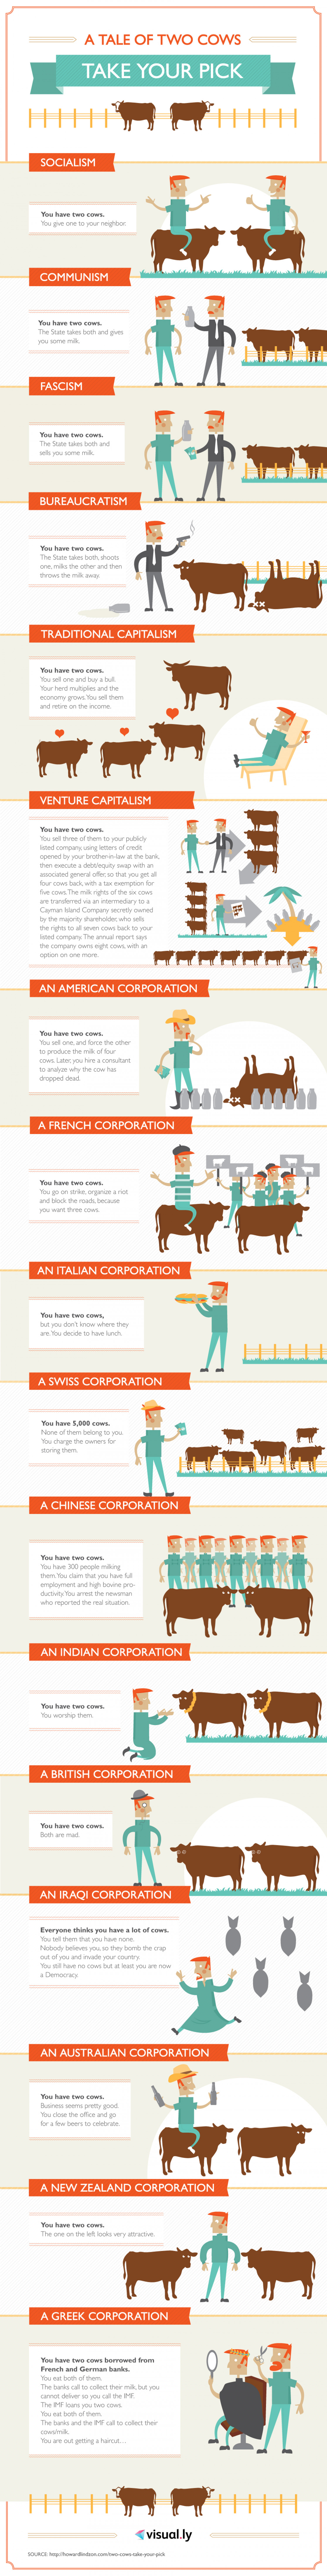 A Tale of Two Cows Infographic